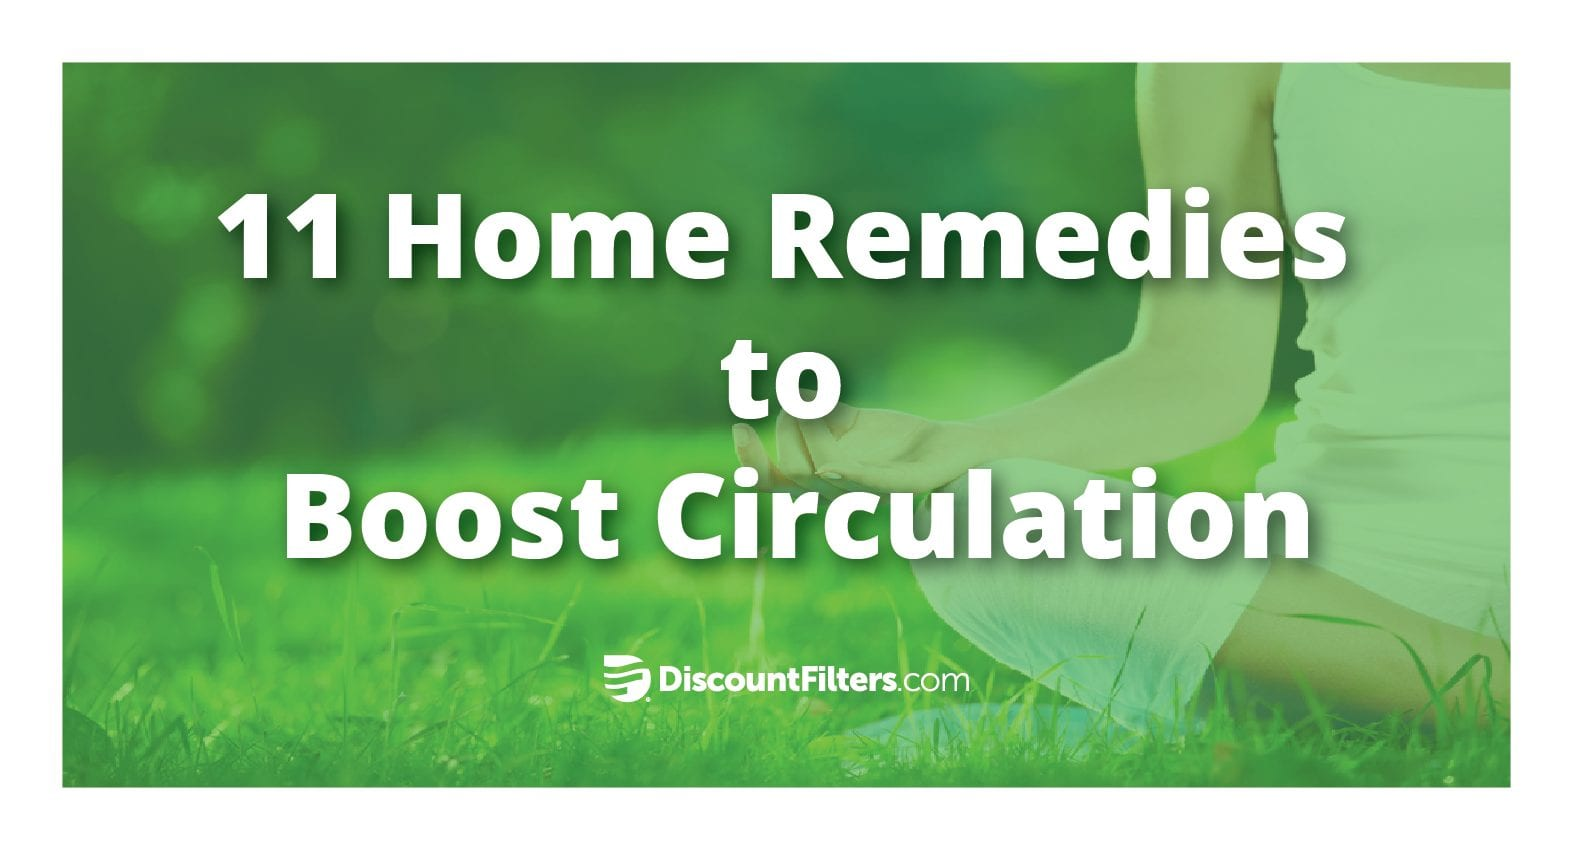 11 home remedies to boost circulation featured image